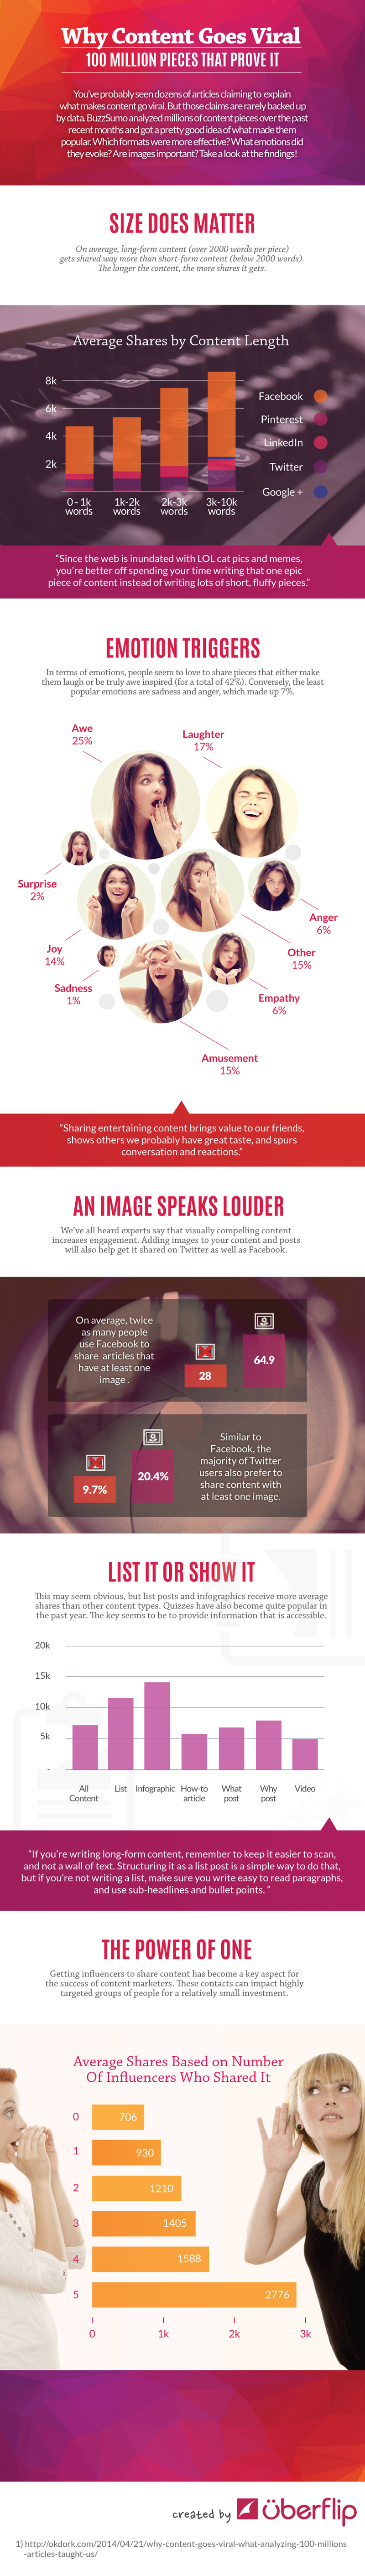 Emotional-Triggers-of-Viral-Content